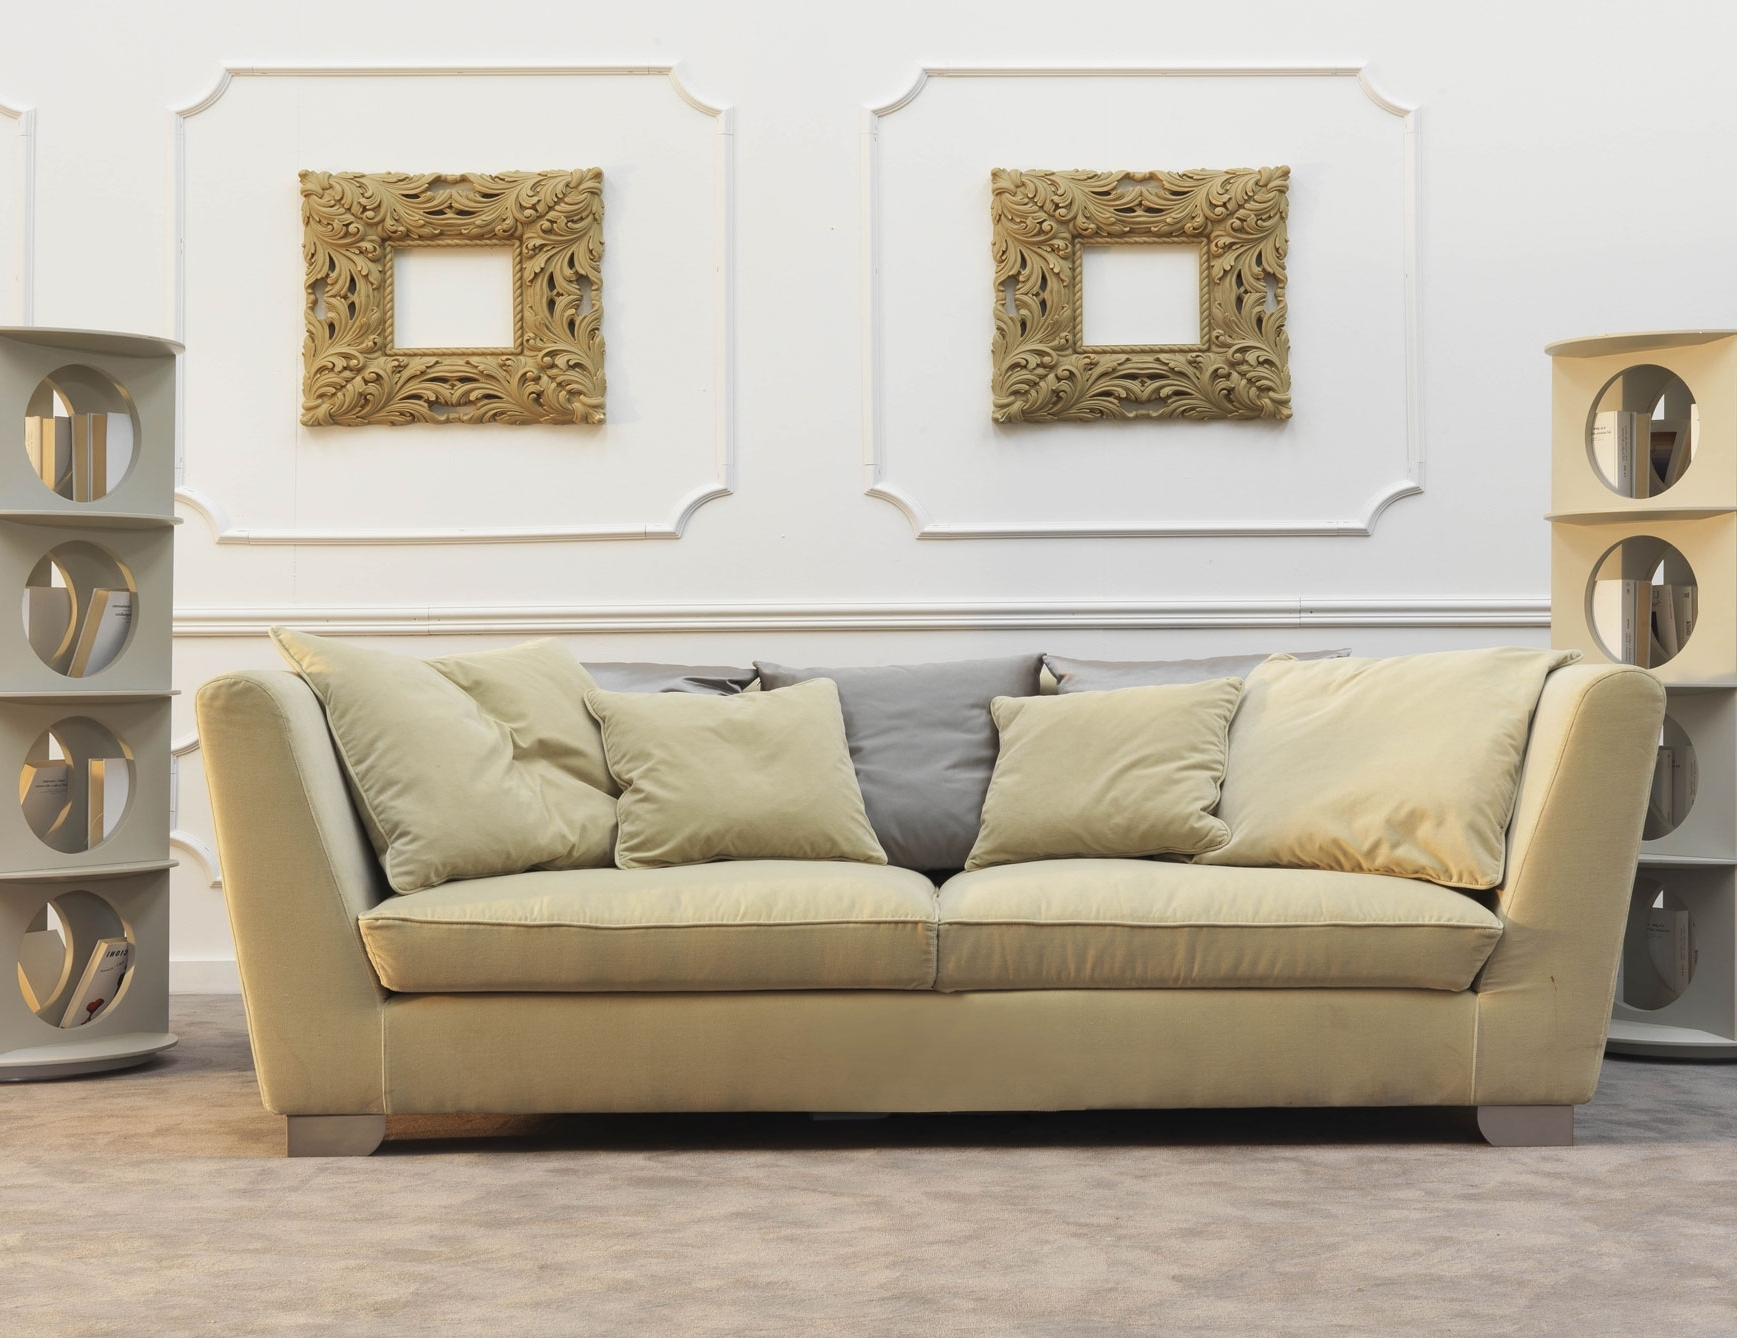 Nella Vetrina Douillet Dou02 Italian Designer Cream Fabric Sofa Within Well Liked Sofas And Chairs (View 10 of 20)